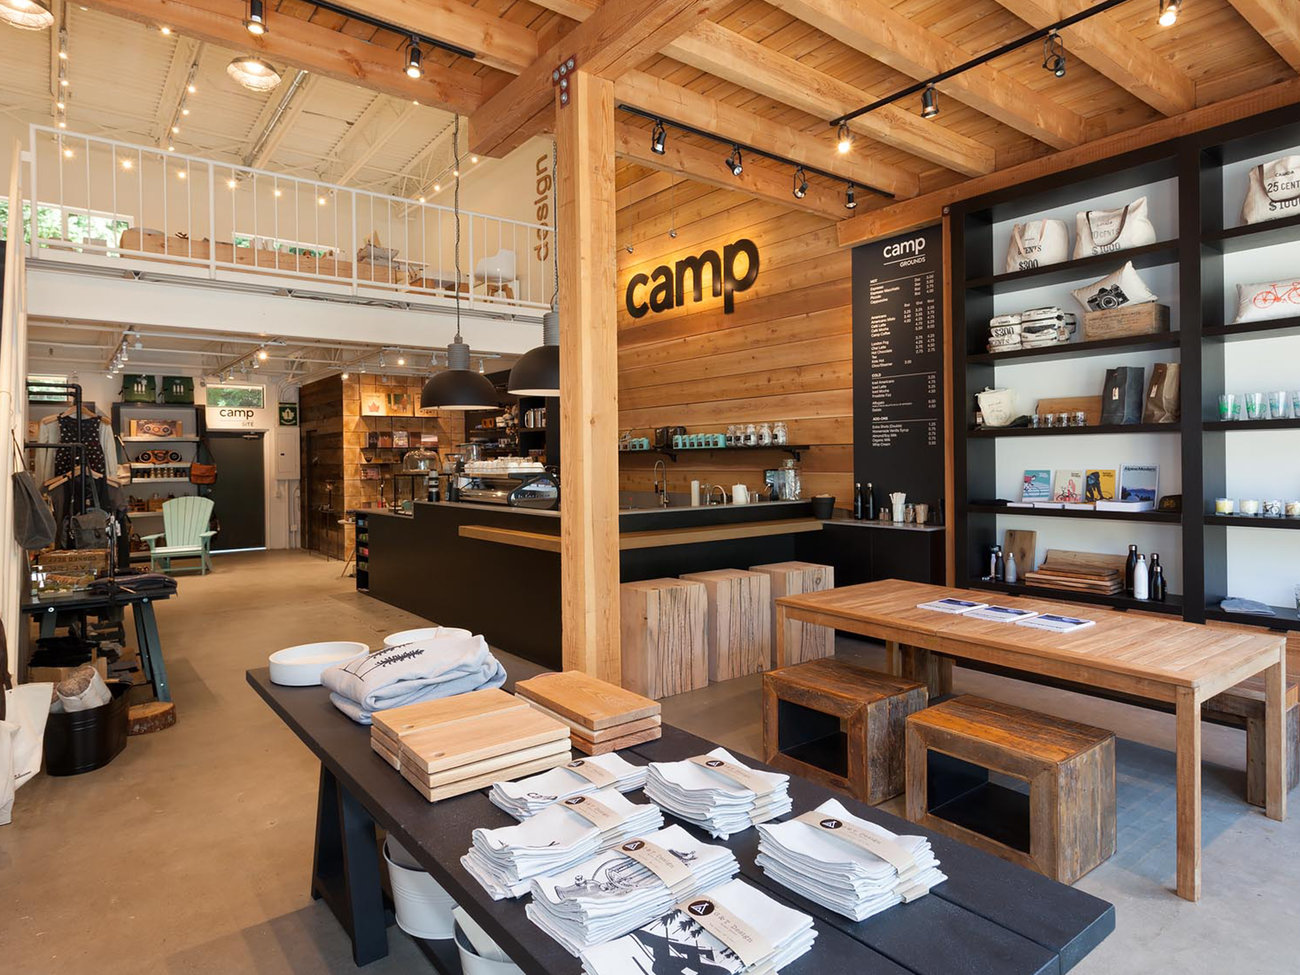 Camp Lifestyle + Coffee Company Store in Whistler